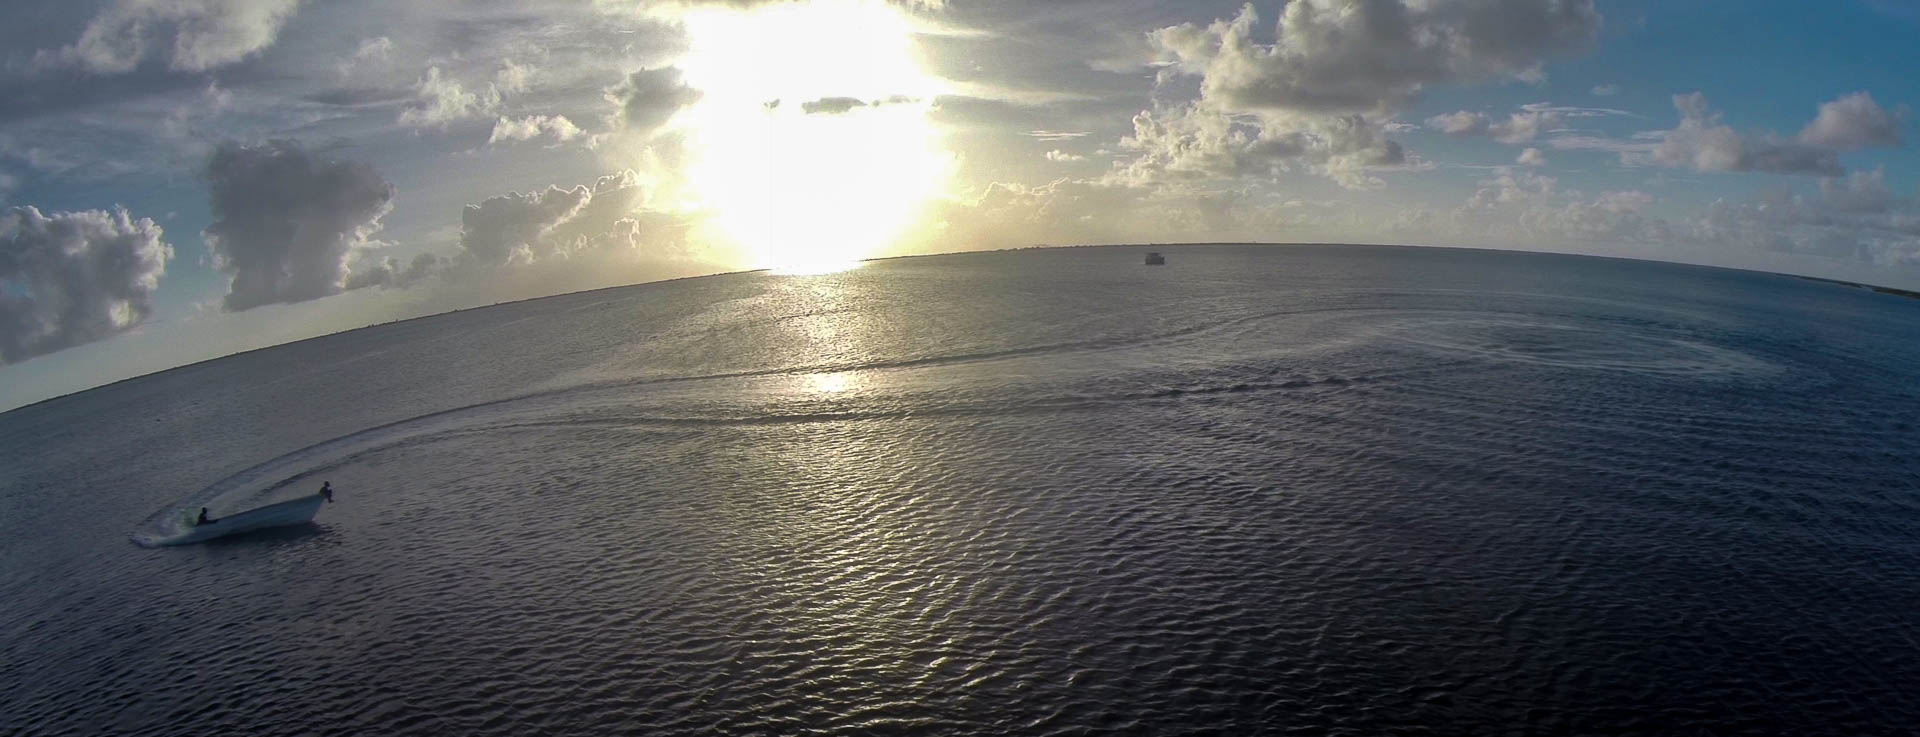 Kids doing donuts, Codrington Lagoon - video still, Tom Miller